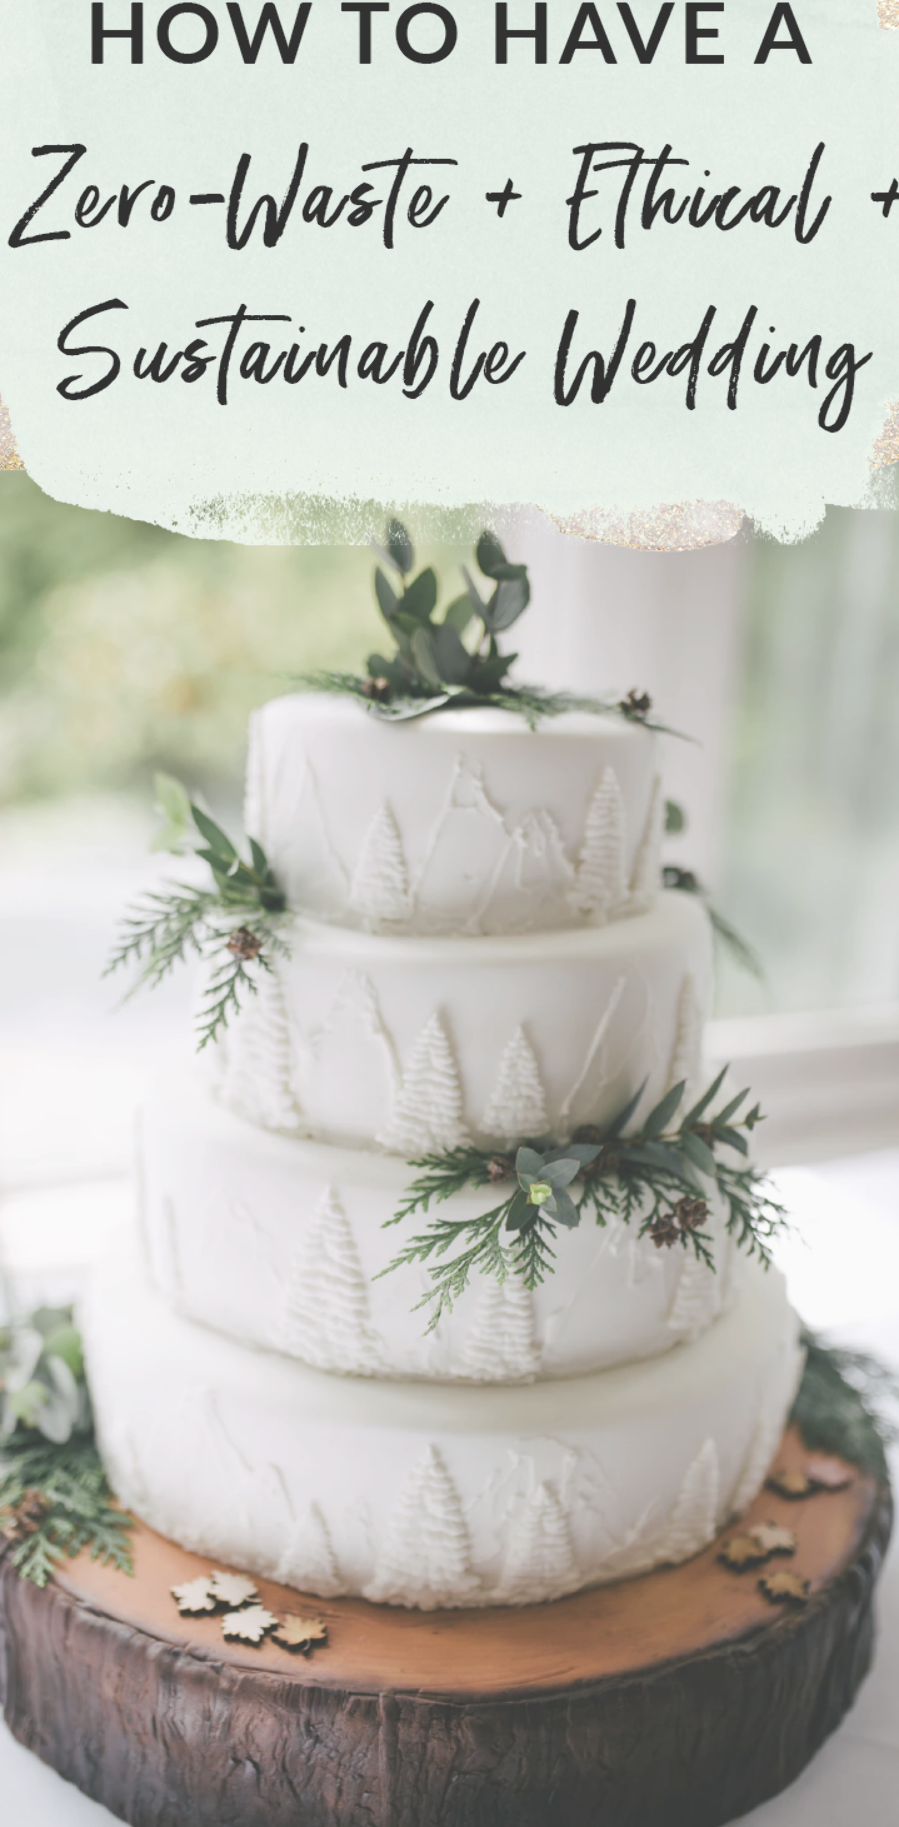 How to have a zero waste, ethical, and sustainable wedding